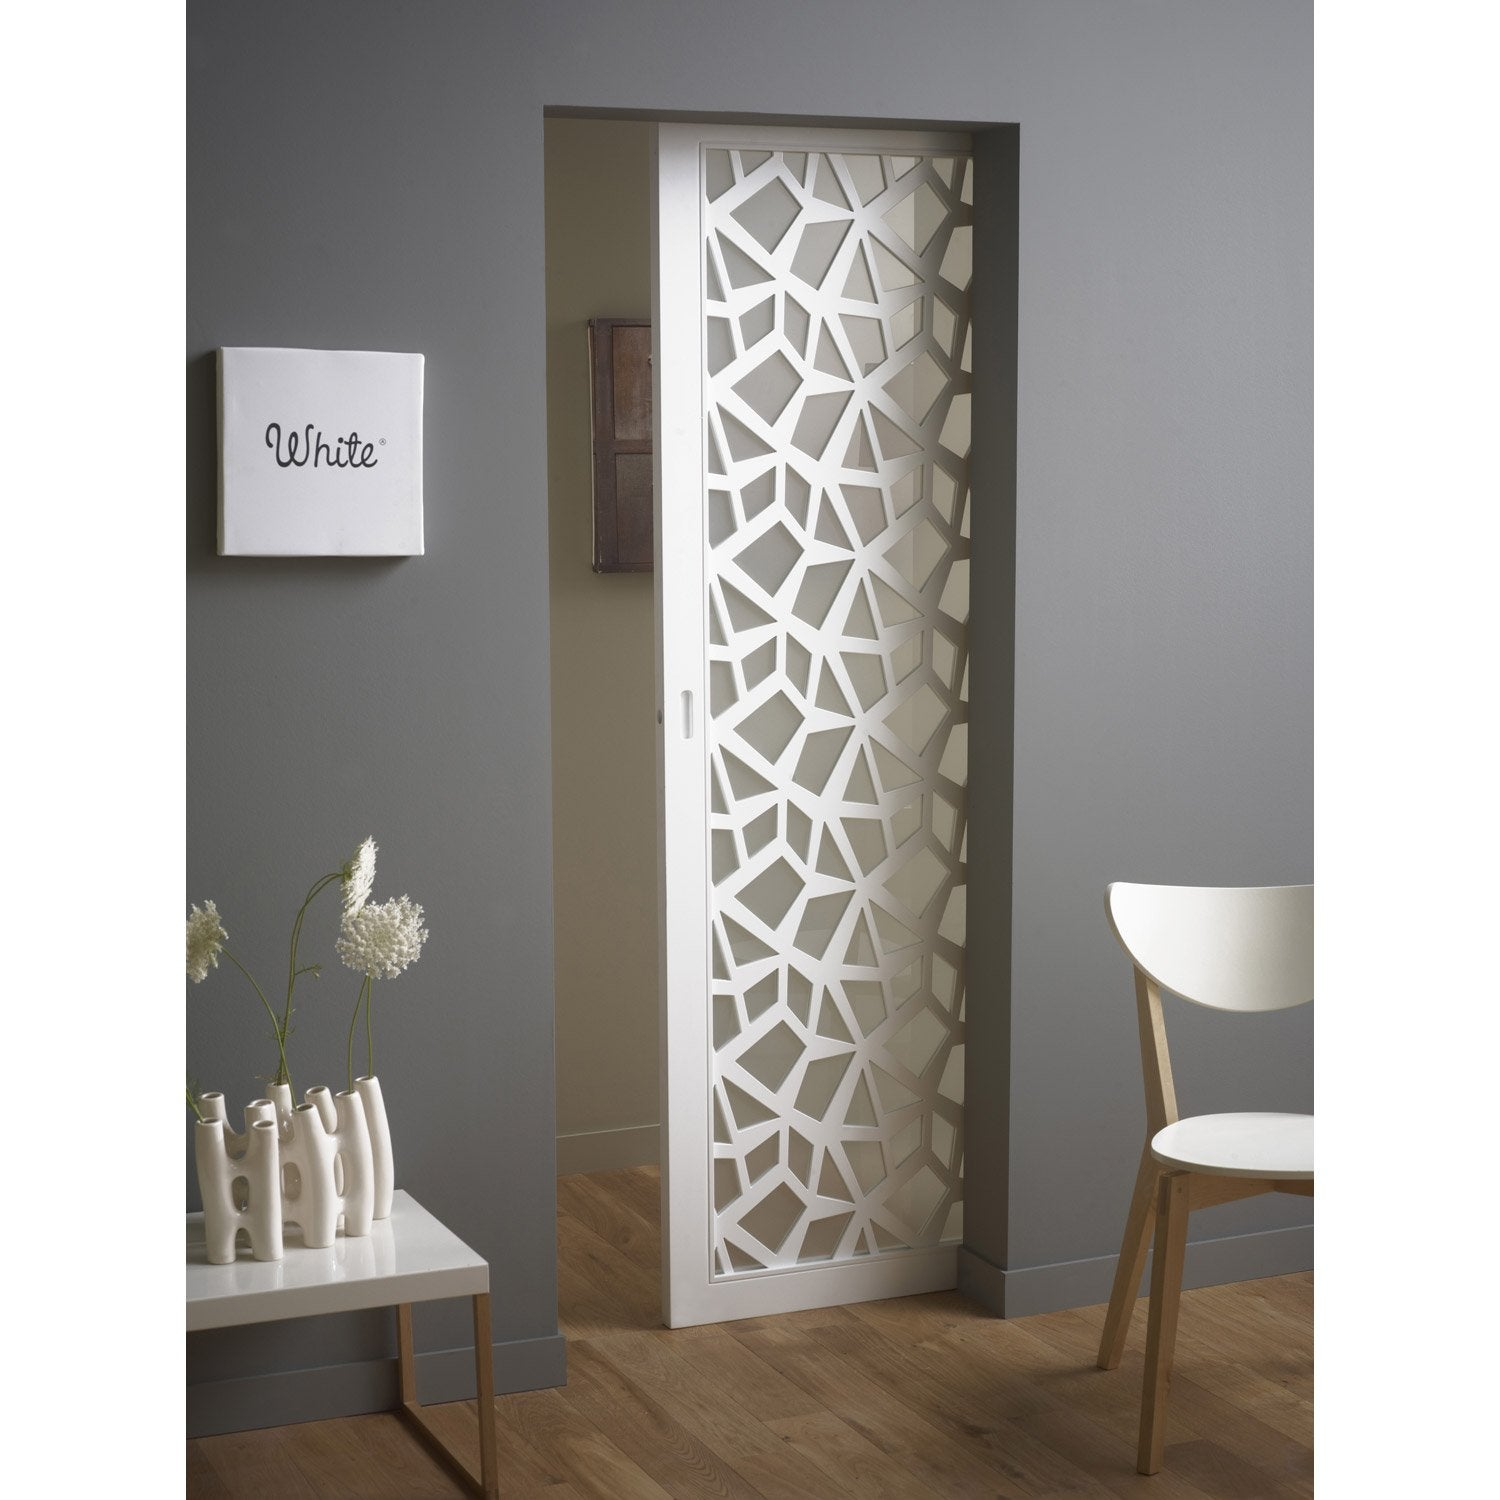 Ensemble porte coulissante crash verre et mdf laqu for Deco porte leroy merlin